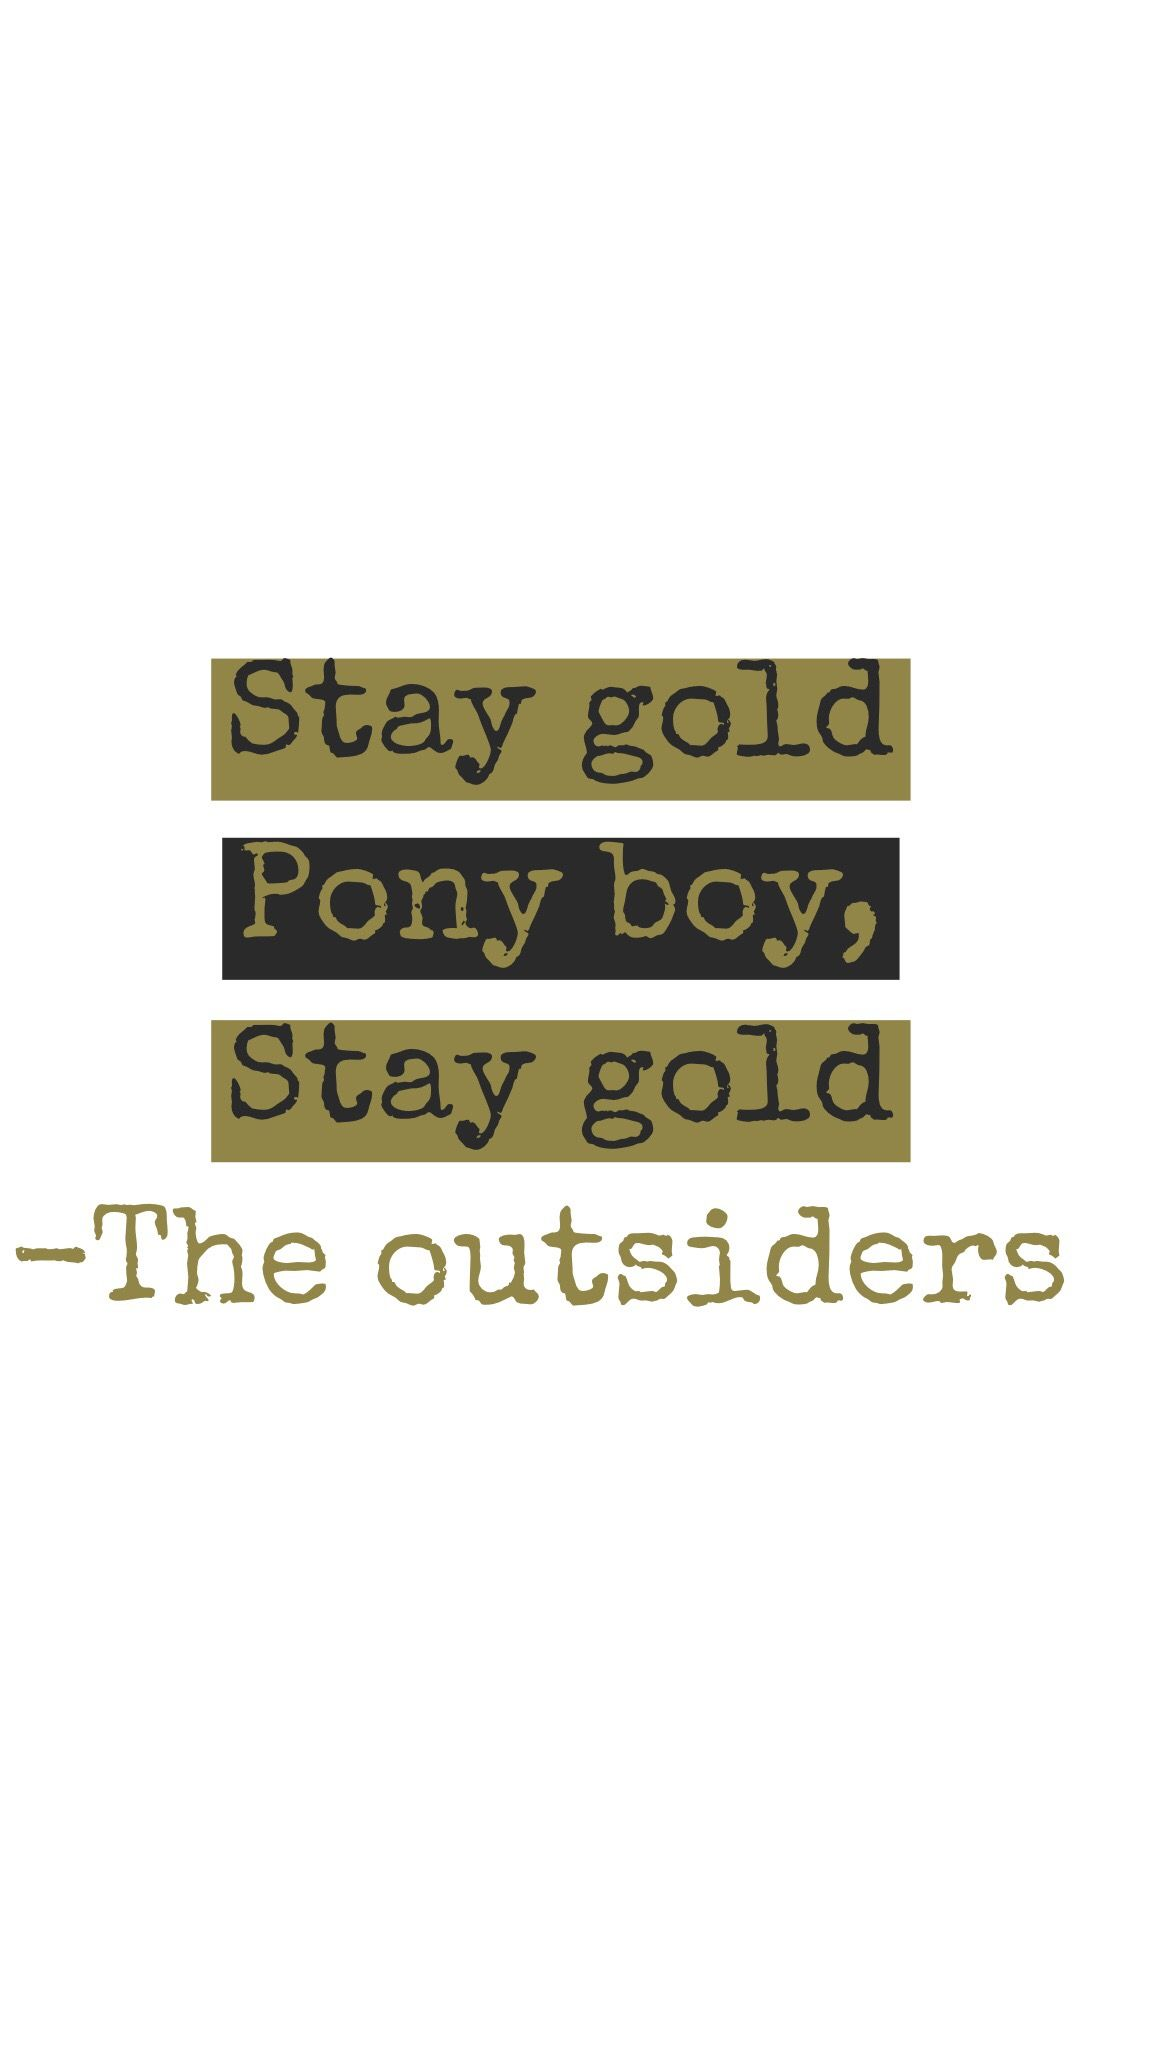 Stay Gold Ponyboy Stay Gold Ponyboy Quote Phone Backgrounds Quotes The Outsiders Easily move forward or backward to get to the perfect spot. stay gold ponyboy stay gold ponyboy